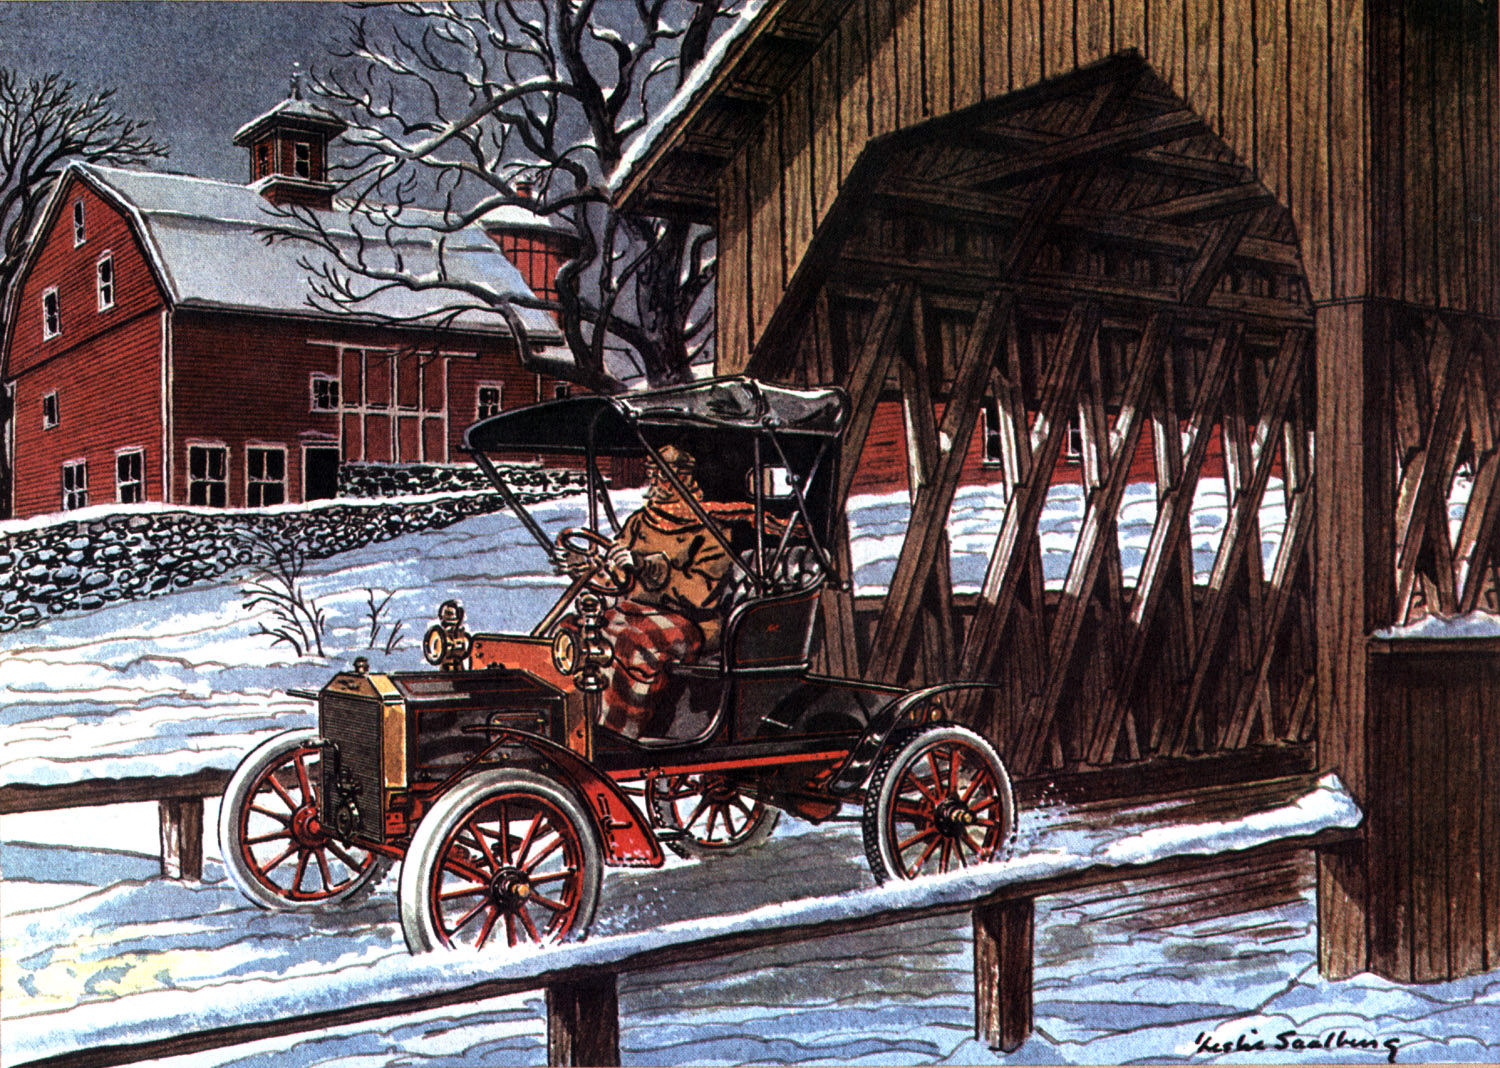 1906 Ford Model N - Illustrated by Leslie Saalburg